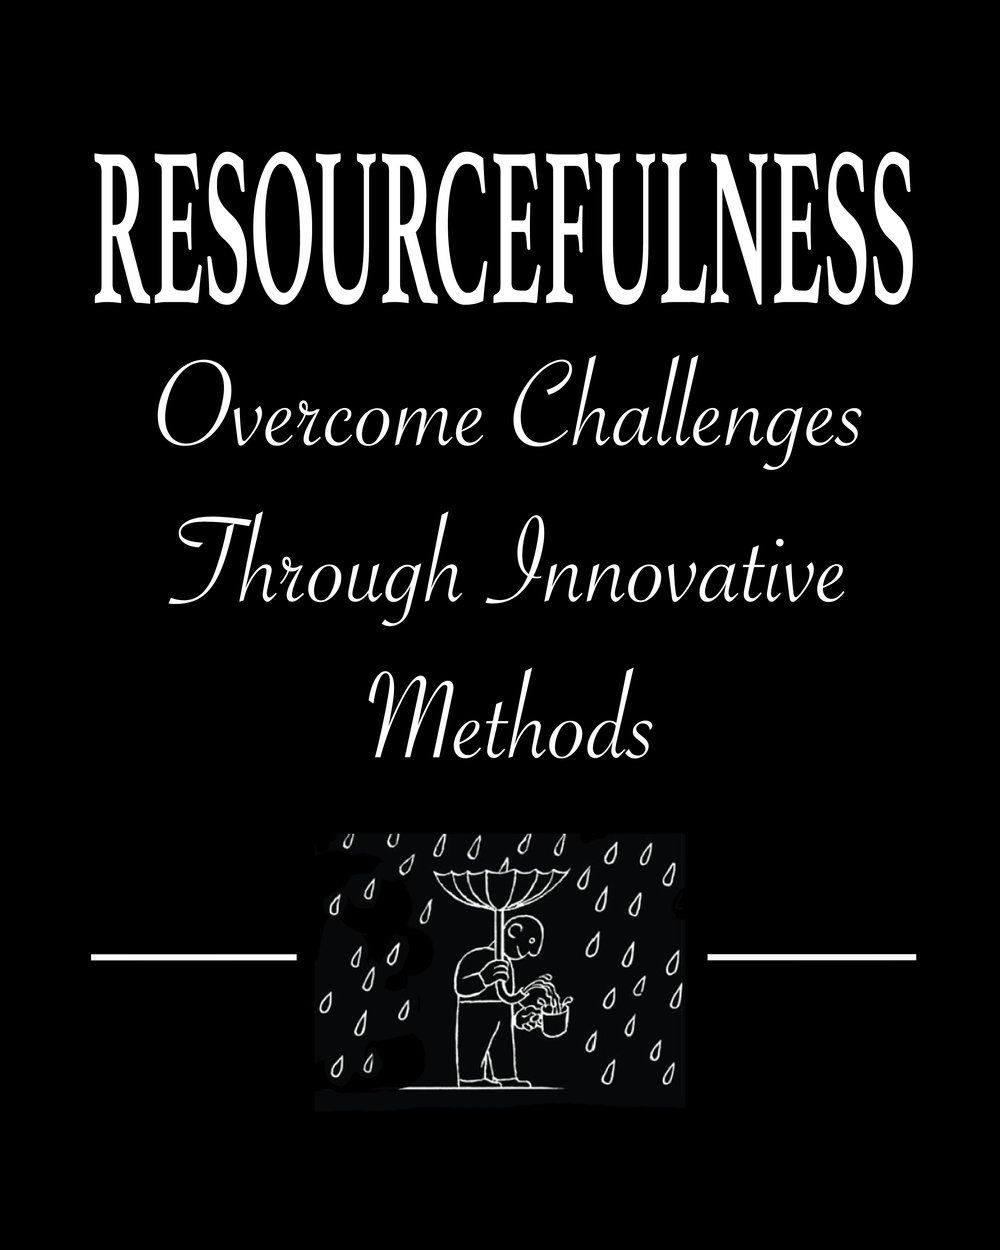 07 Resourcefullness.jpg